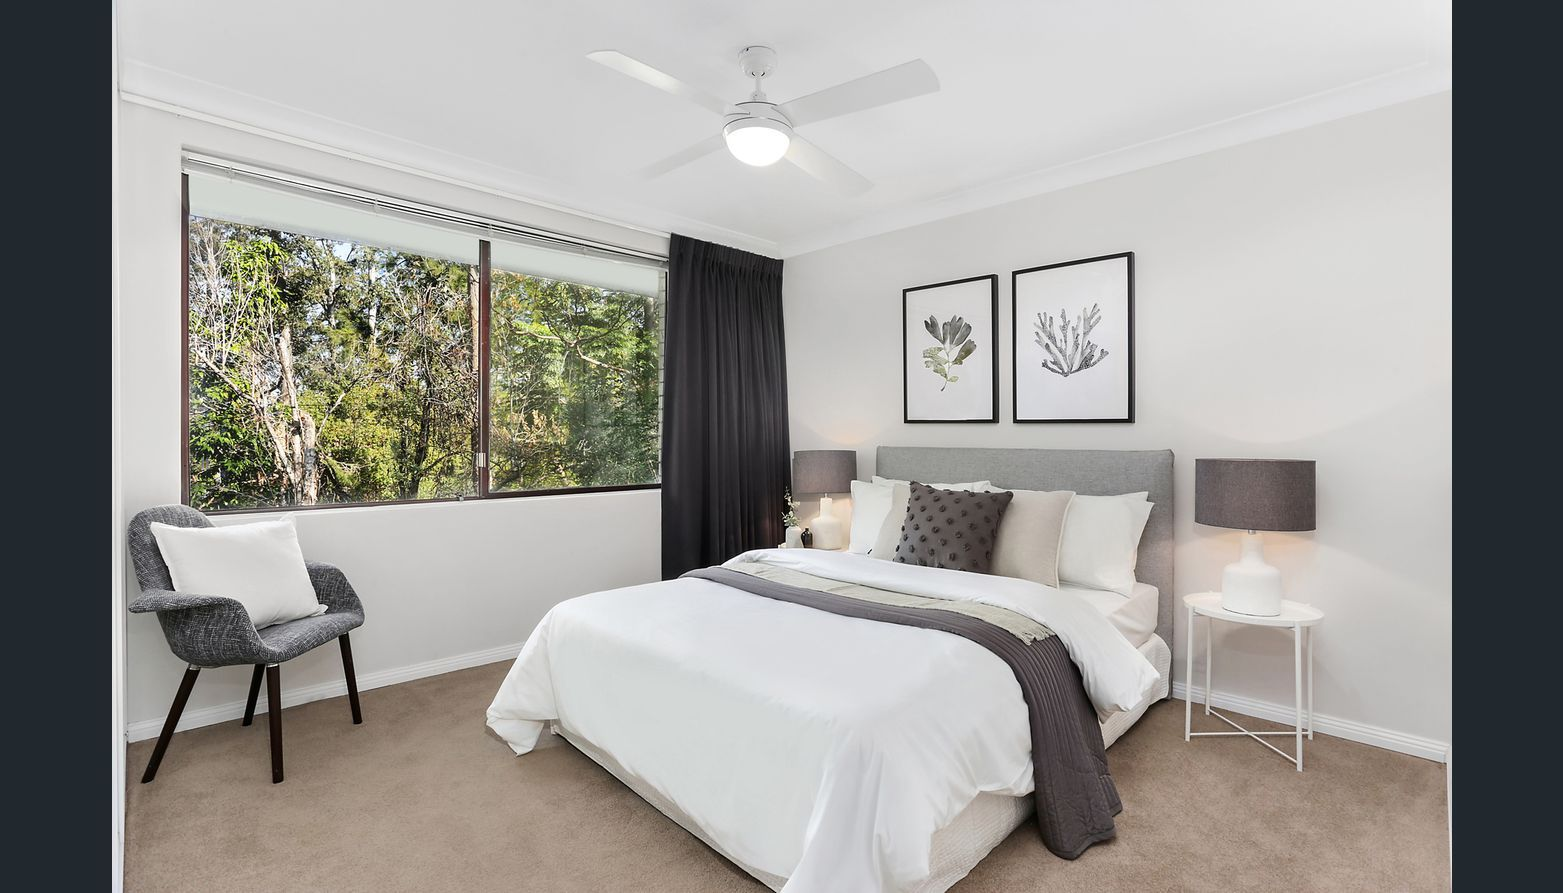 17/1292 Pacific Highway, Turramurra NSW 2074, Image 2